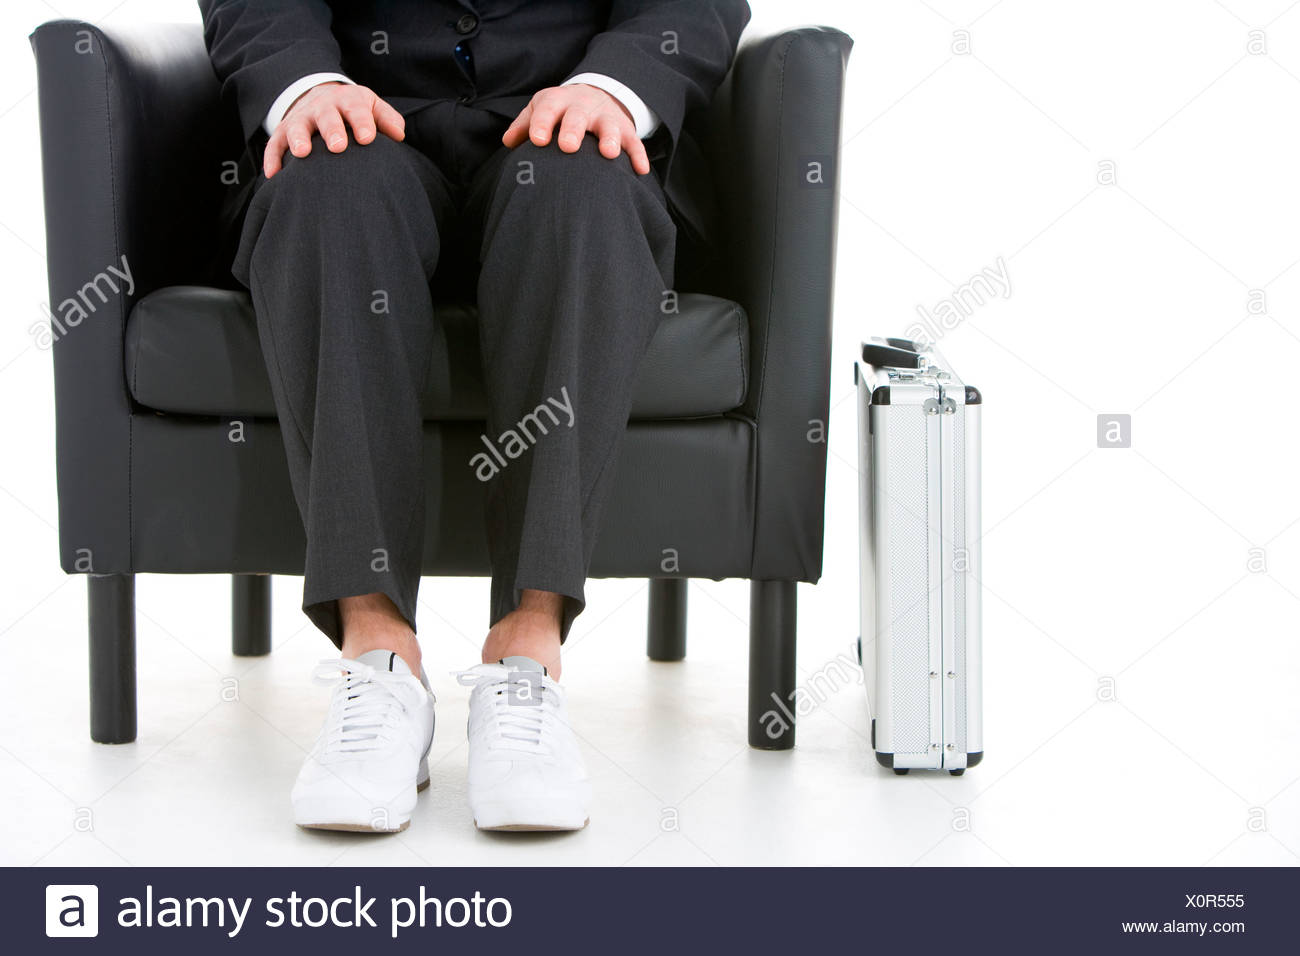 Businessman Holding Wearing Sneakers - Stock Image